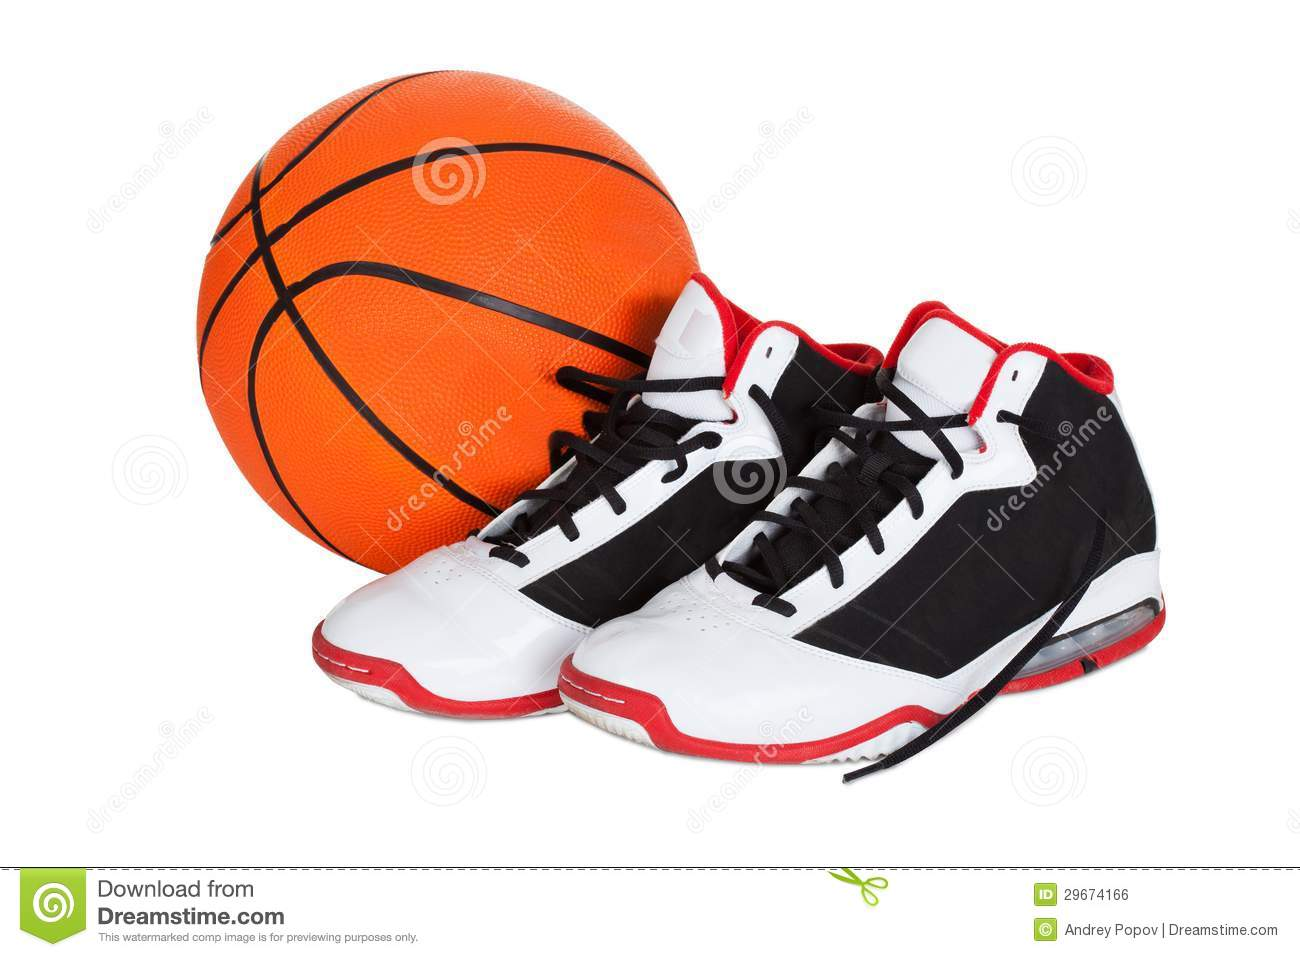 d2081882 Pair of basketball shoes stock photo. Image of professional - 29674166